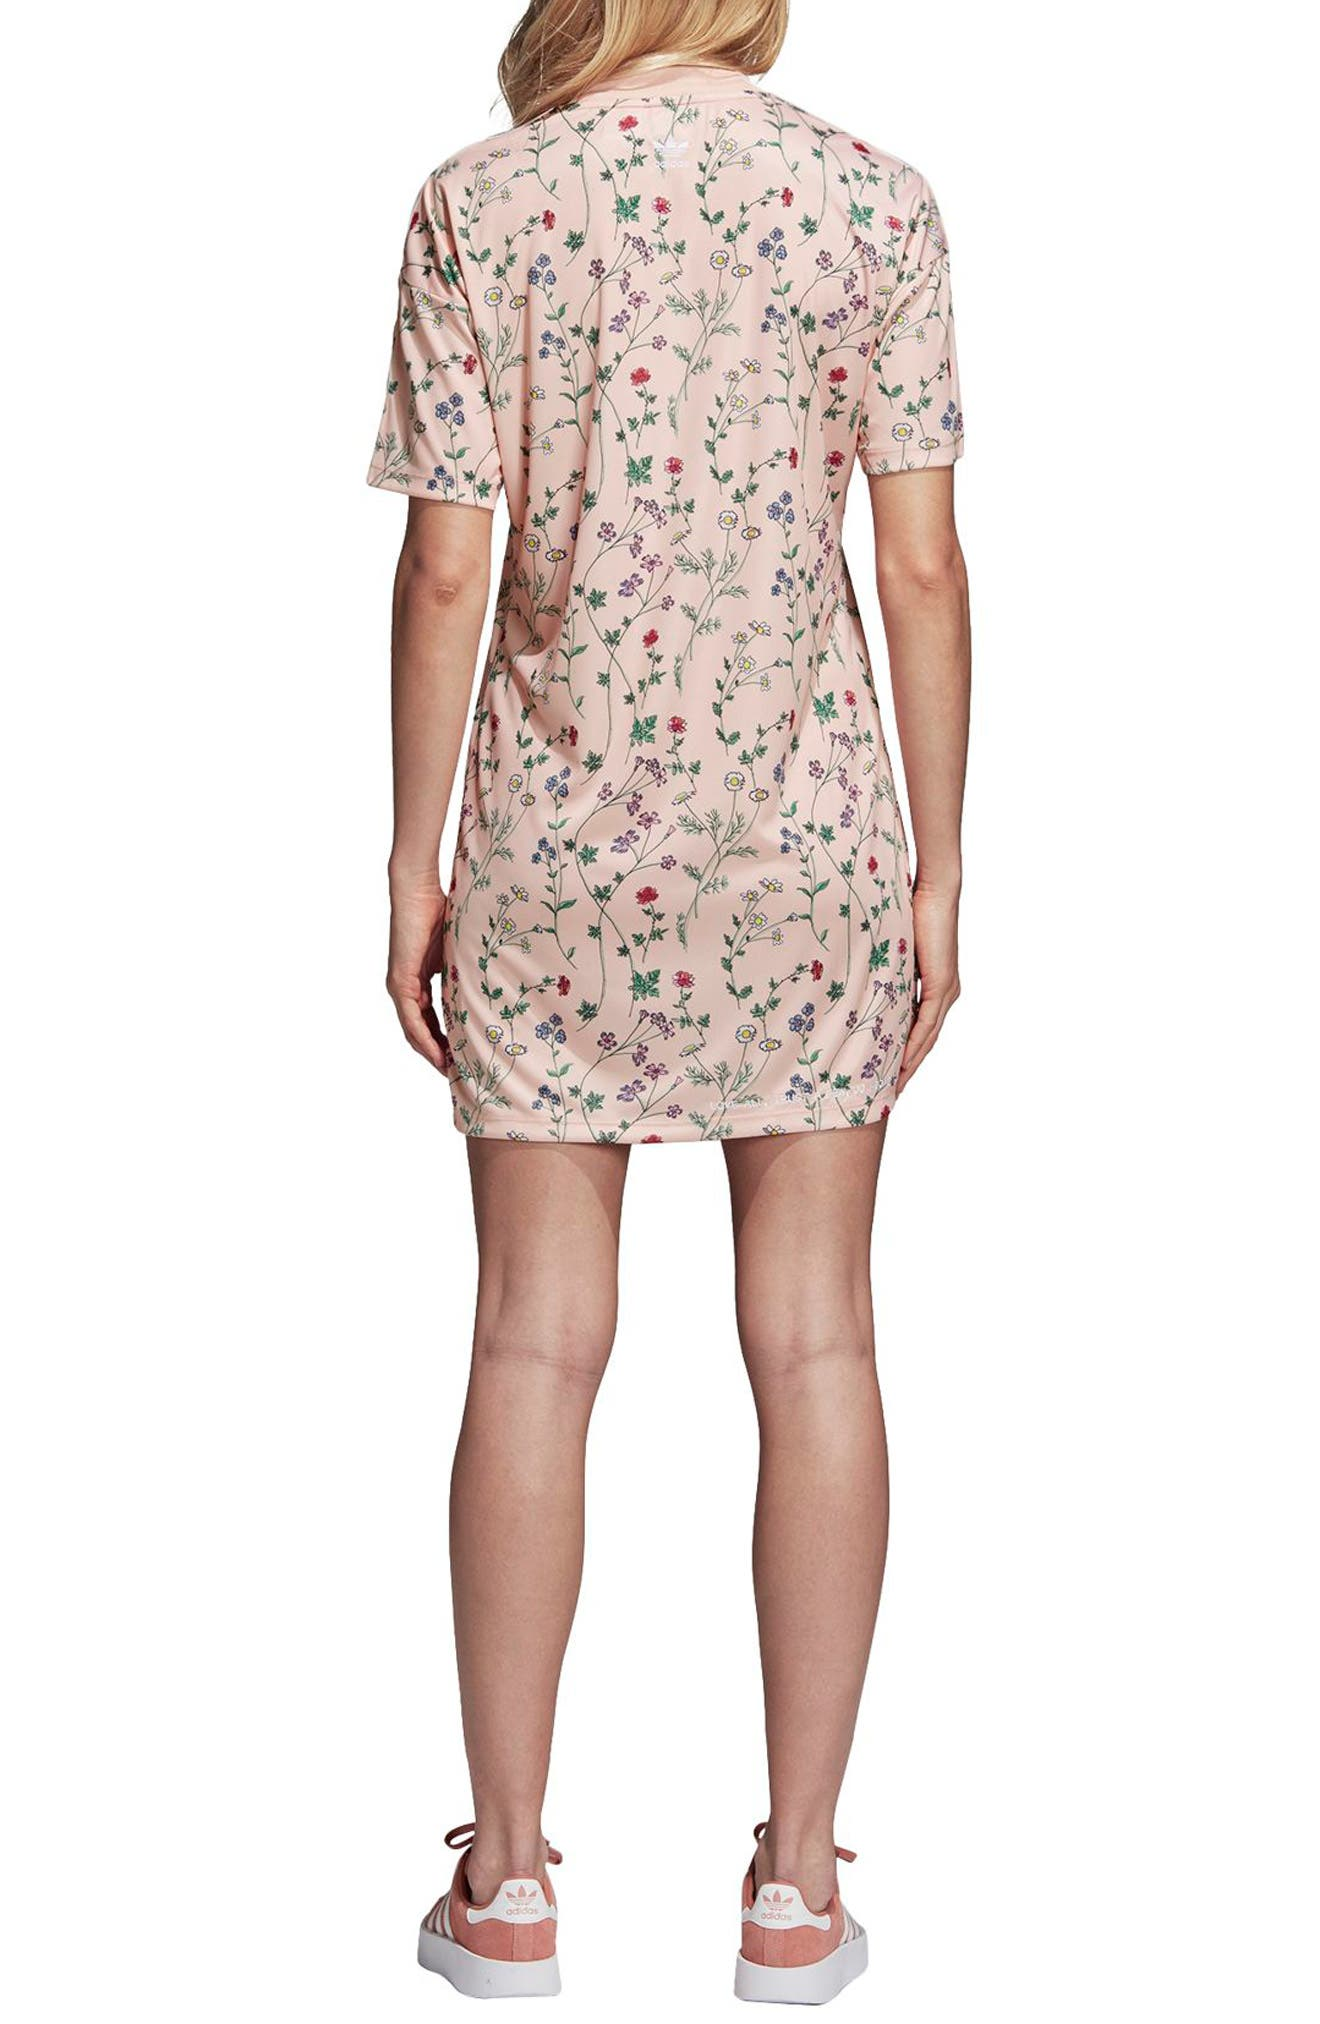 Originals Floral Graphic Dress,                             Alternate thumbnail 2, color,                             Pink - Flower Aop